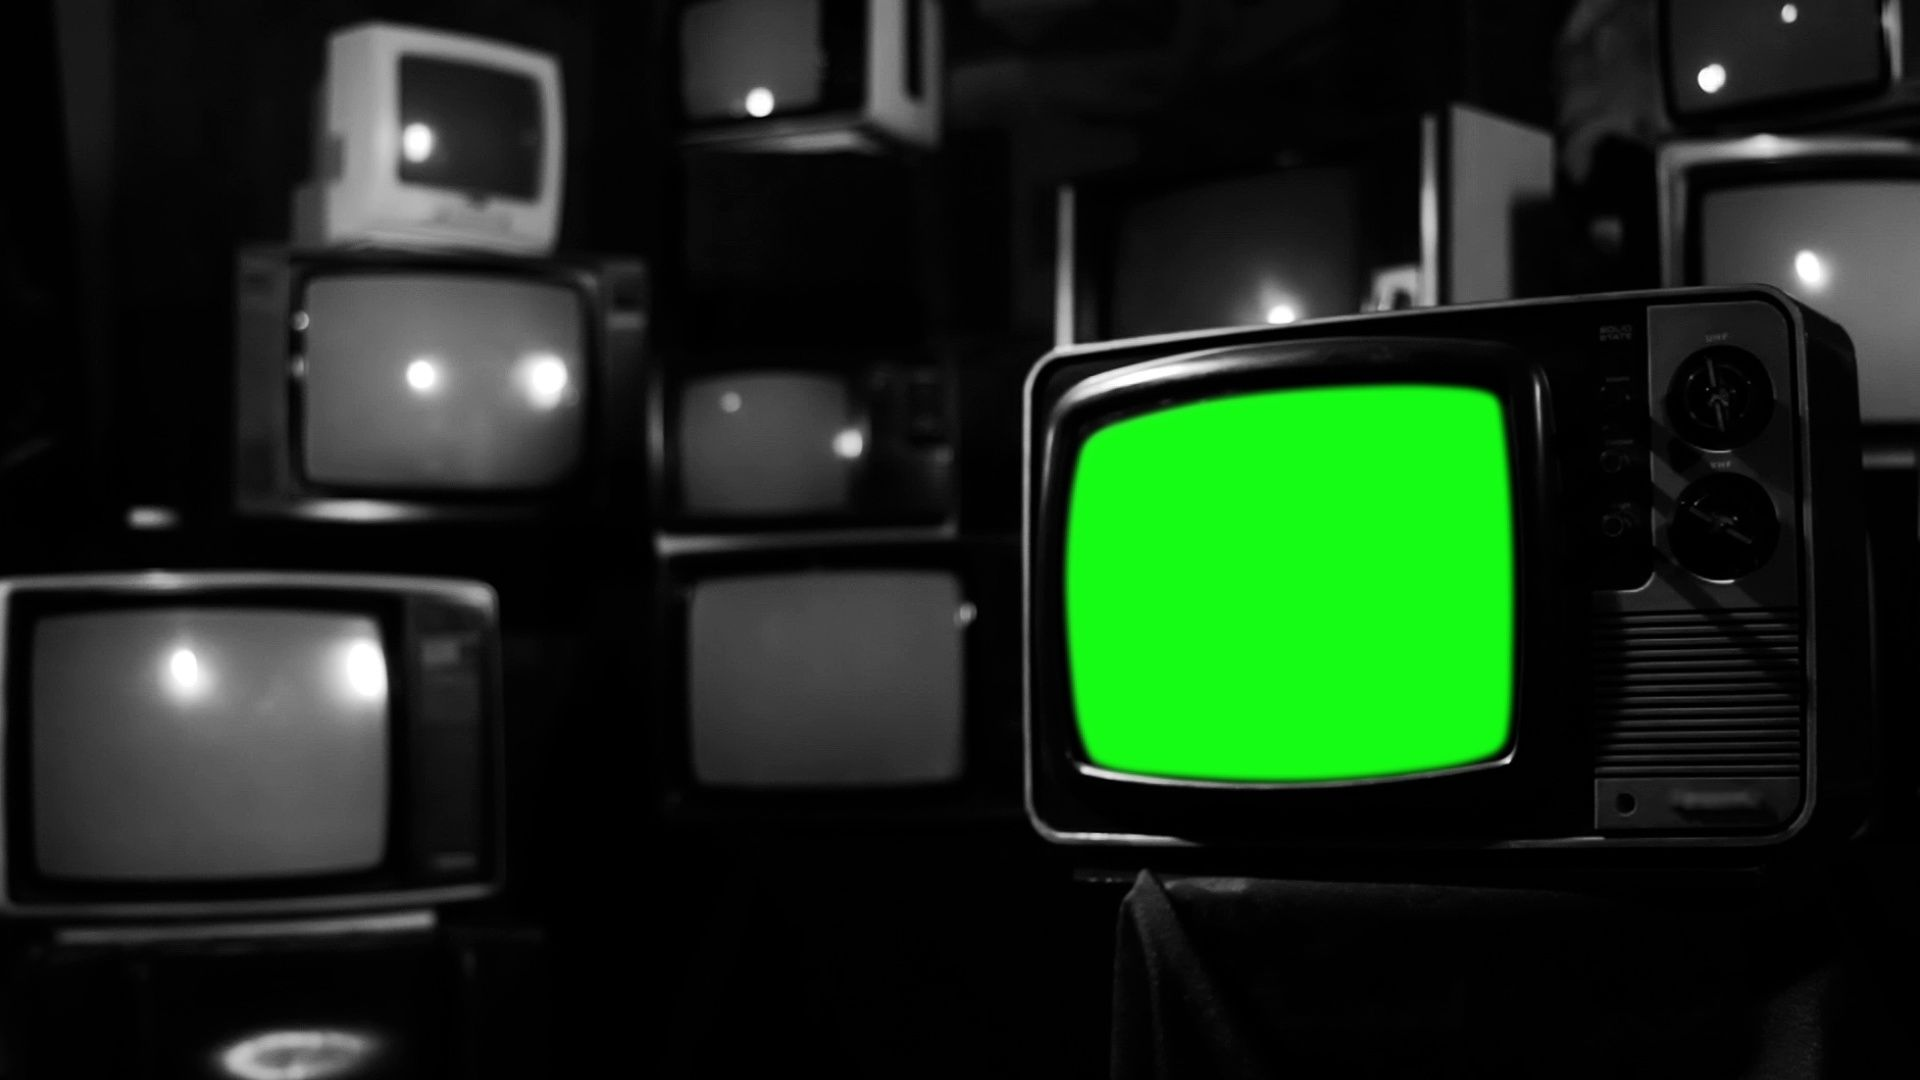 Tv Of The 1980s With Green Screen Over A Retro Tv Wall Bw Tone Zoom Out Stock Footage Ad Screen Retro Tv Green Greenscreen Green Screen Footage Tv Wall